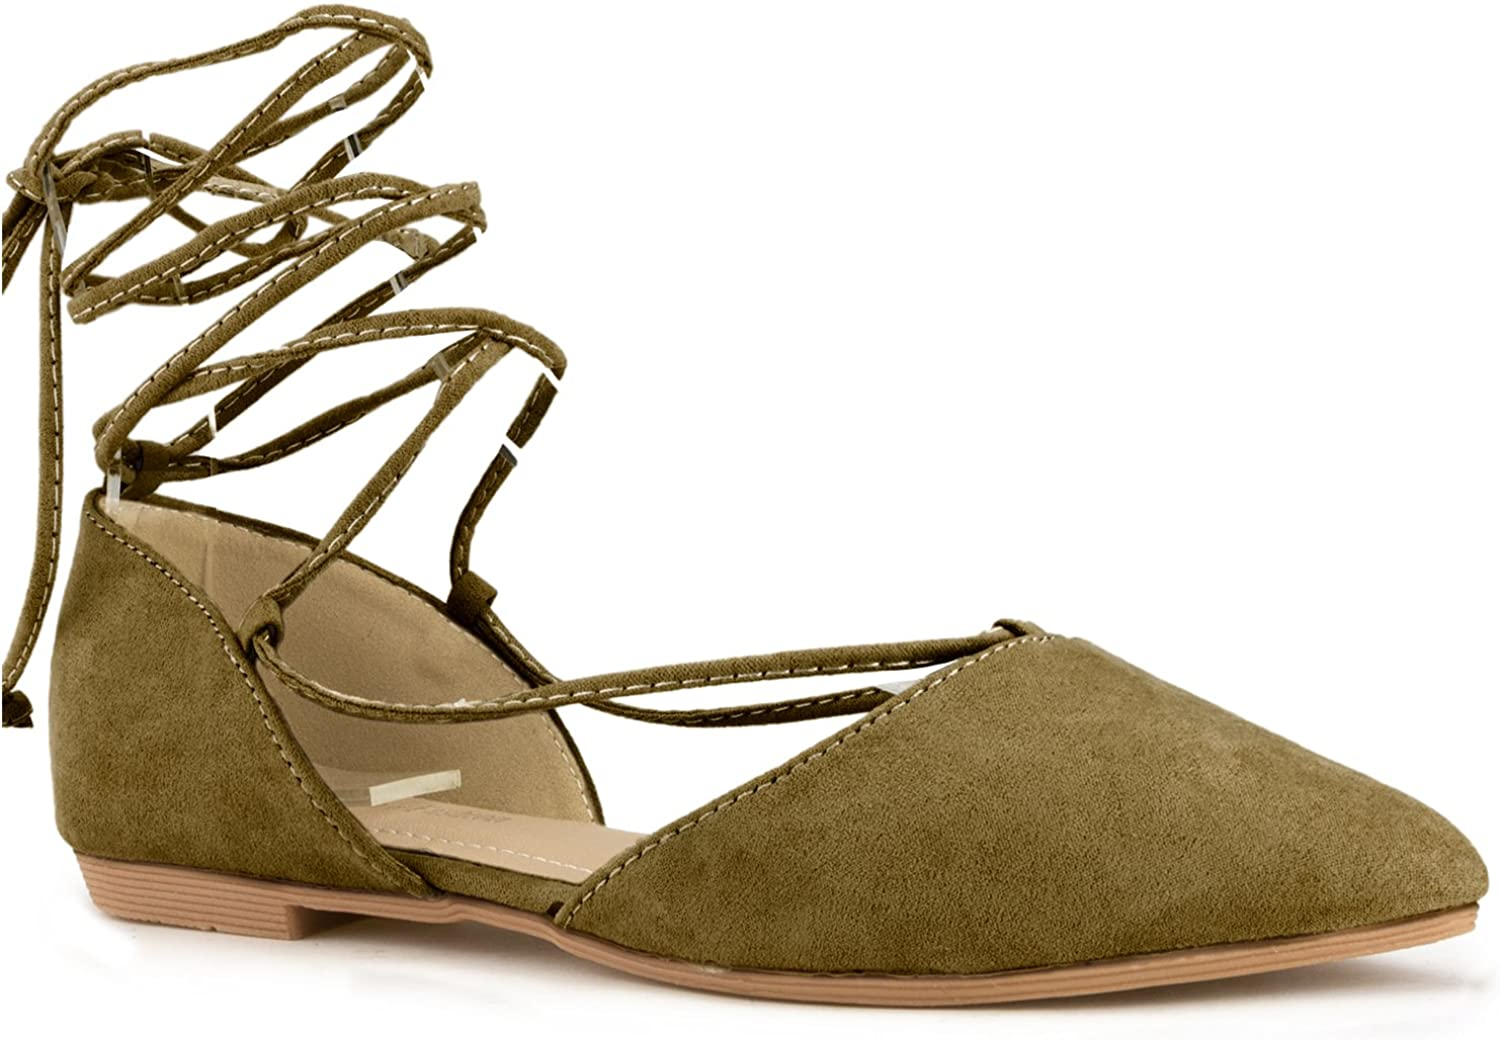 Fashion Designer Inspired Ankle Strap Wrap Around Tie Up Pointy Pointed Toe D'Orsay Ballet Flats Sandals